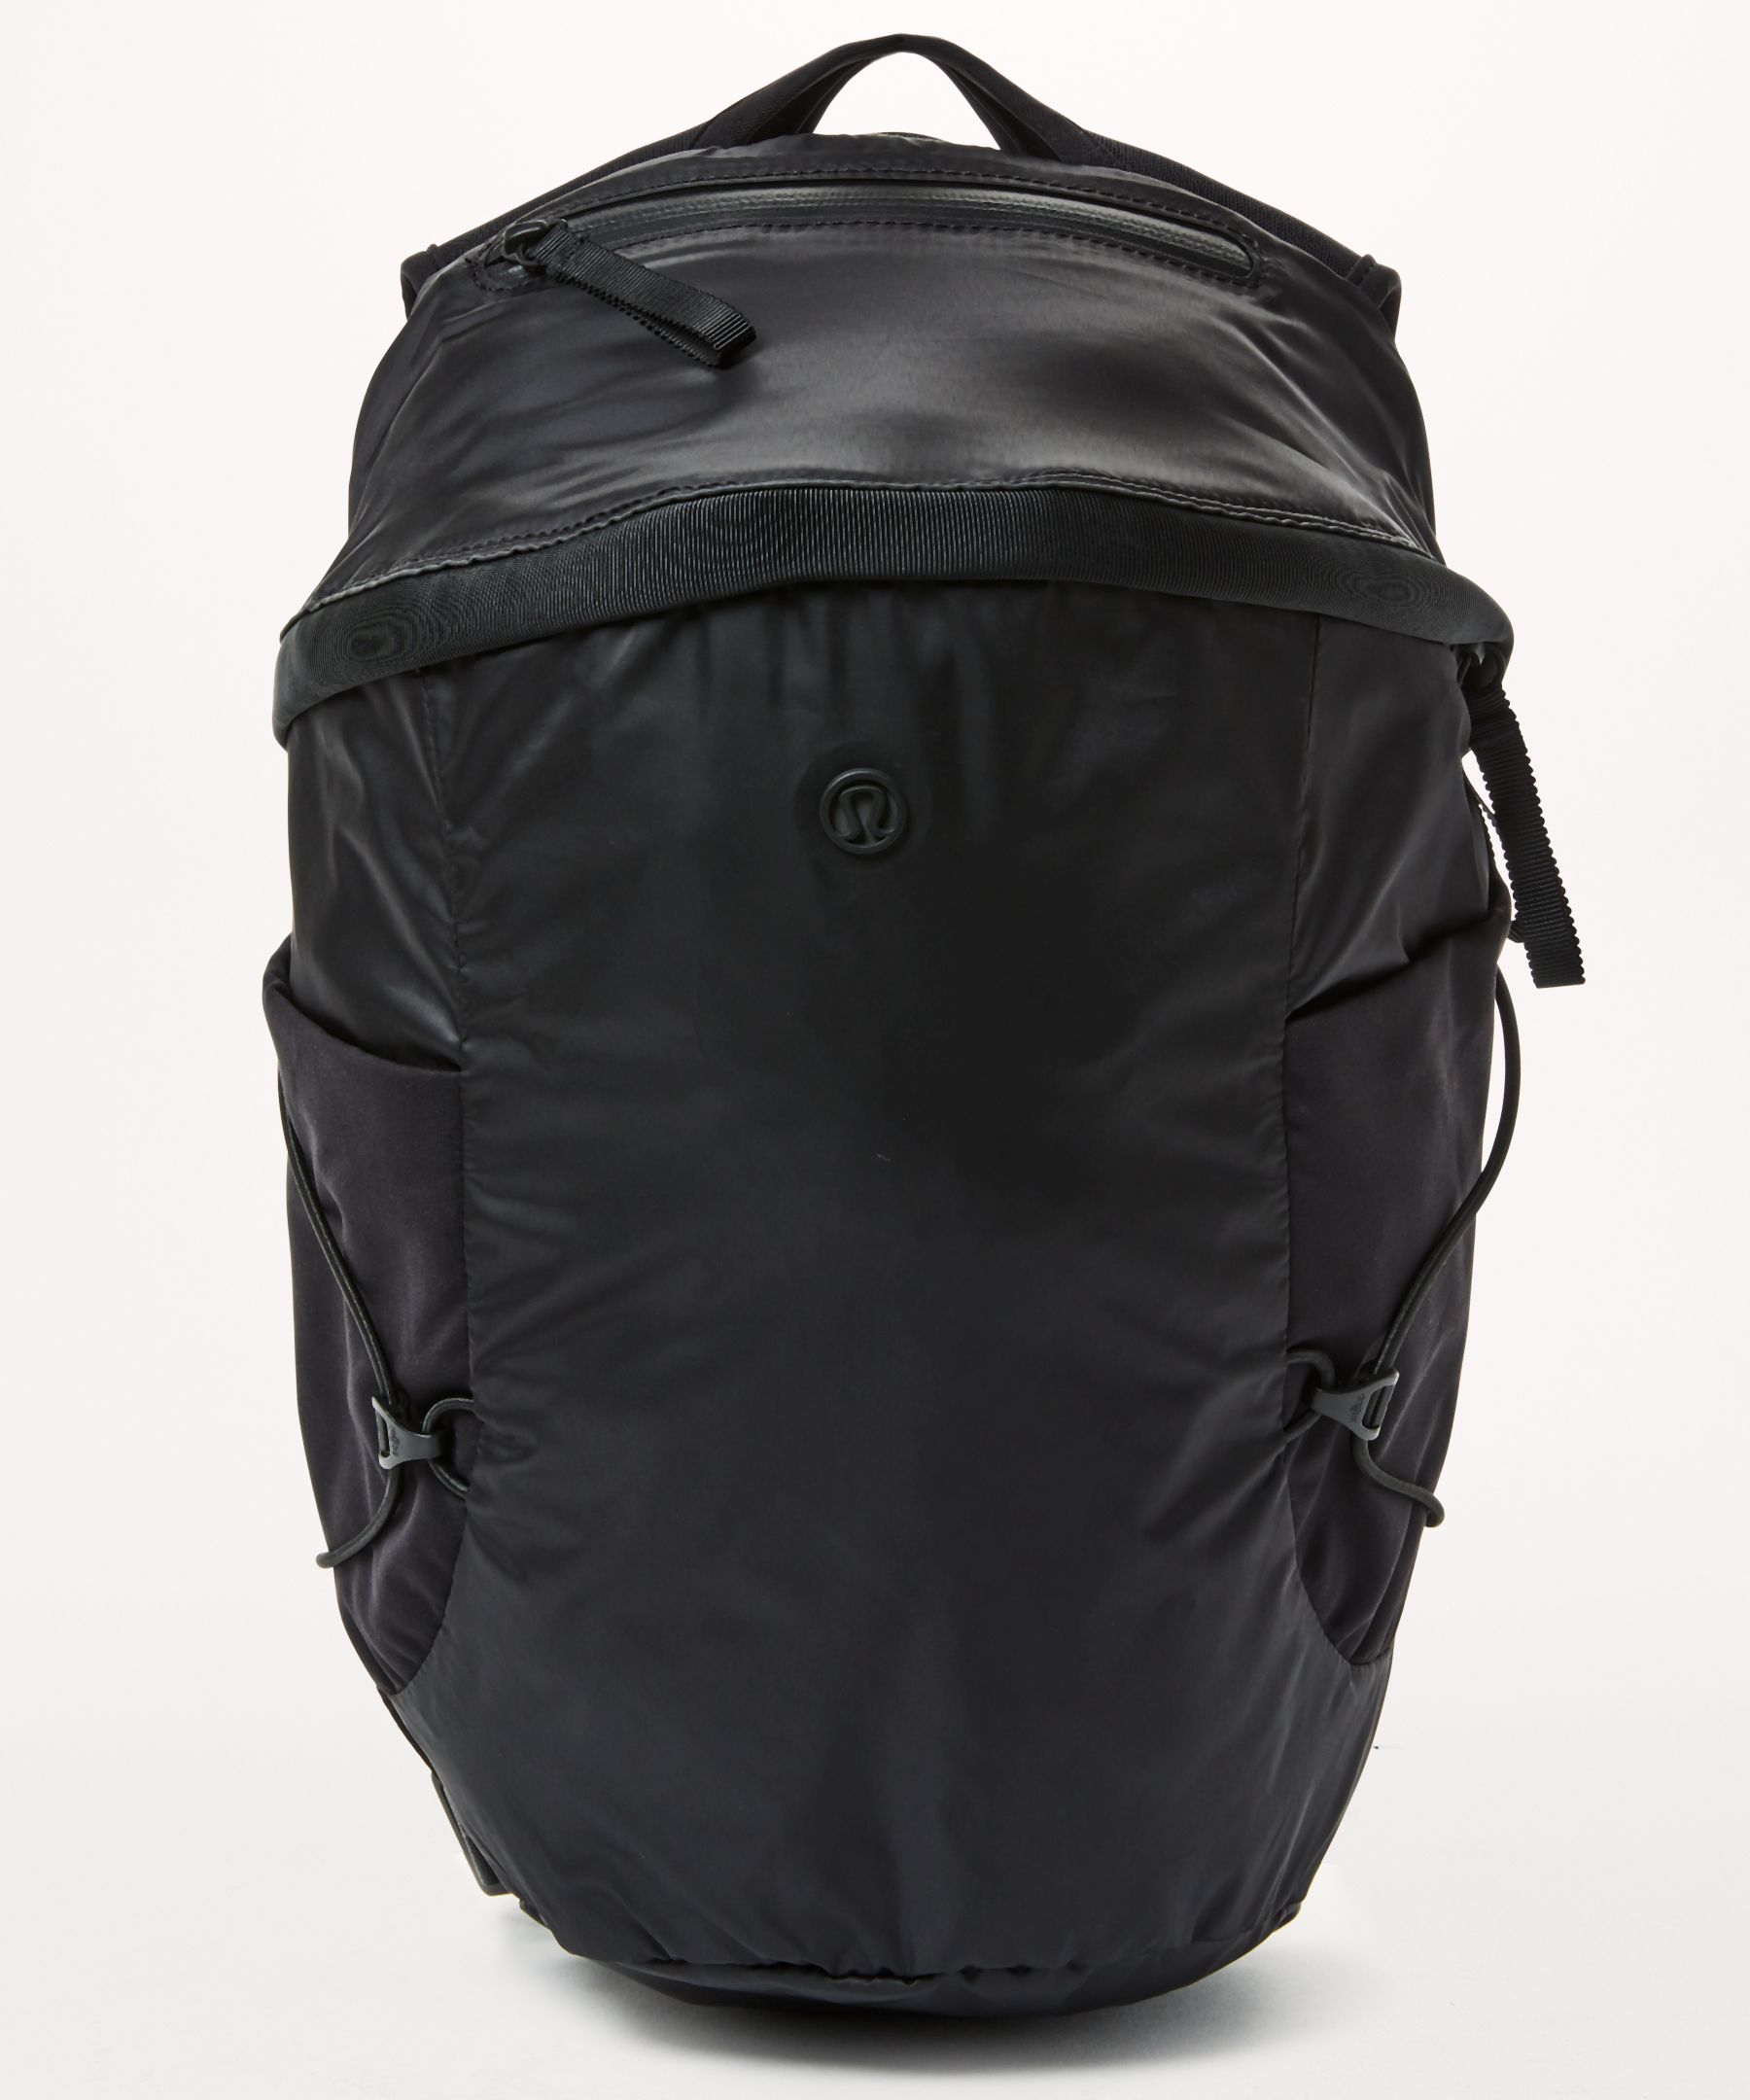 d9e88d8544f3 run all day backpack II